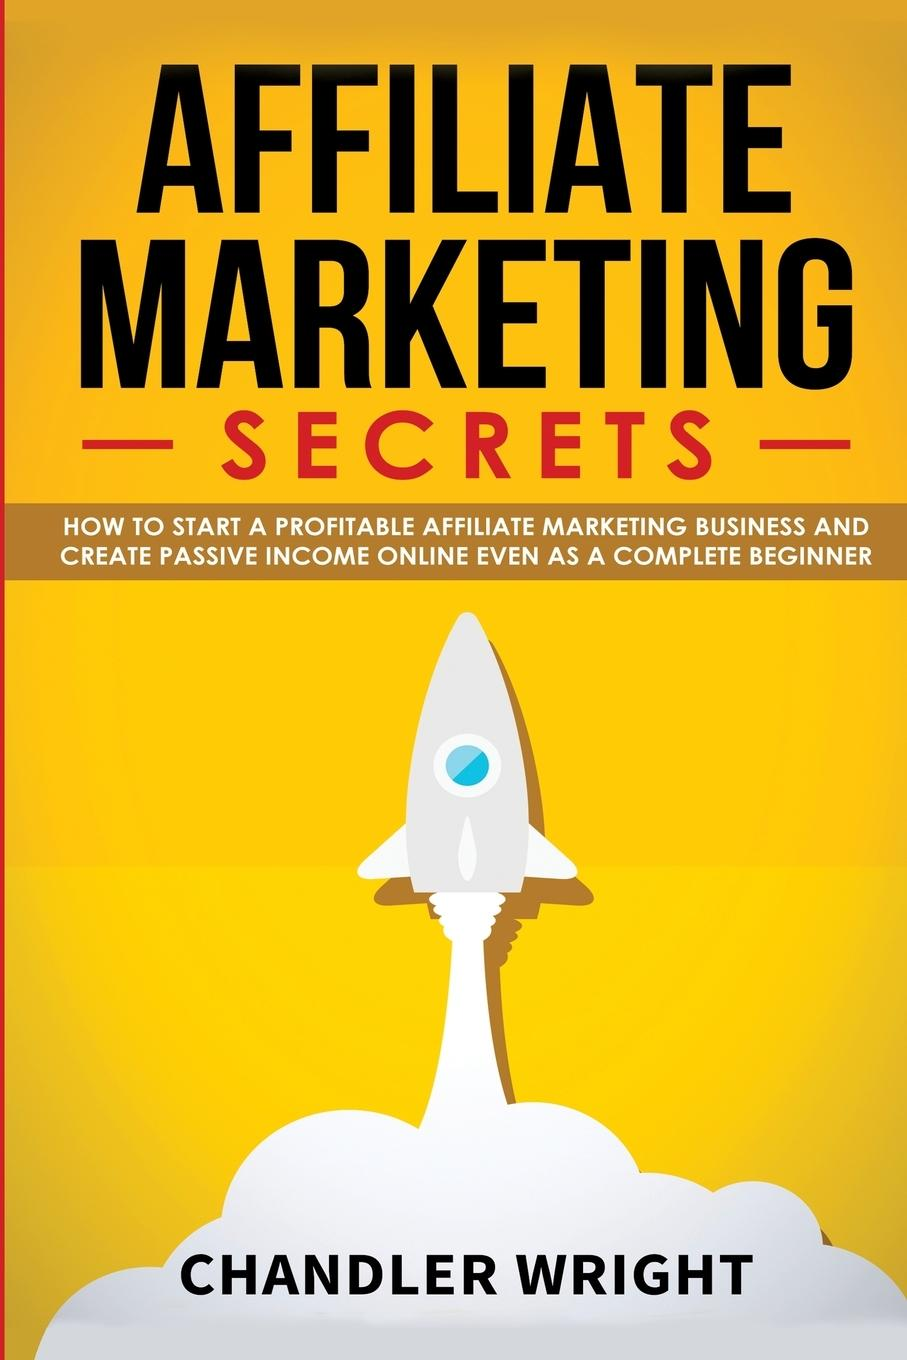 Affiliate Marketing  Secrets - How to Start a Profitable Affiliate Marketing Business and Generate Passive Income Online, Even as a Complete Beginner  Chandler Wright  Taschenbuch  Paperback - Wright, Chandler